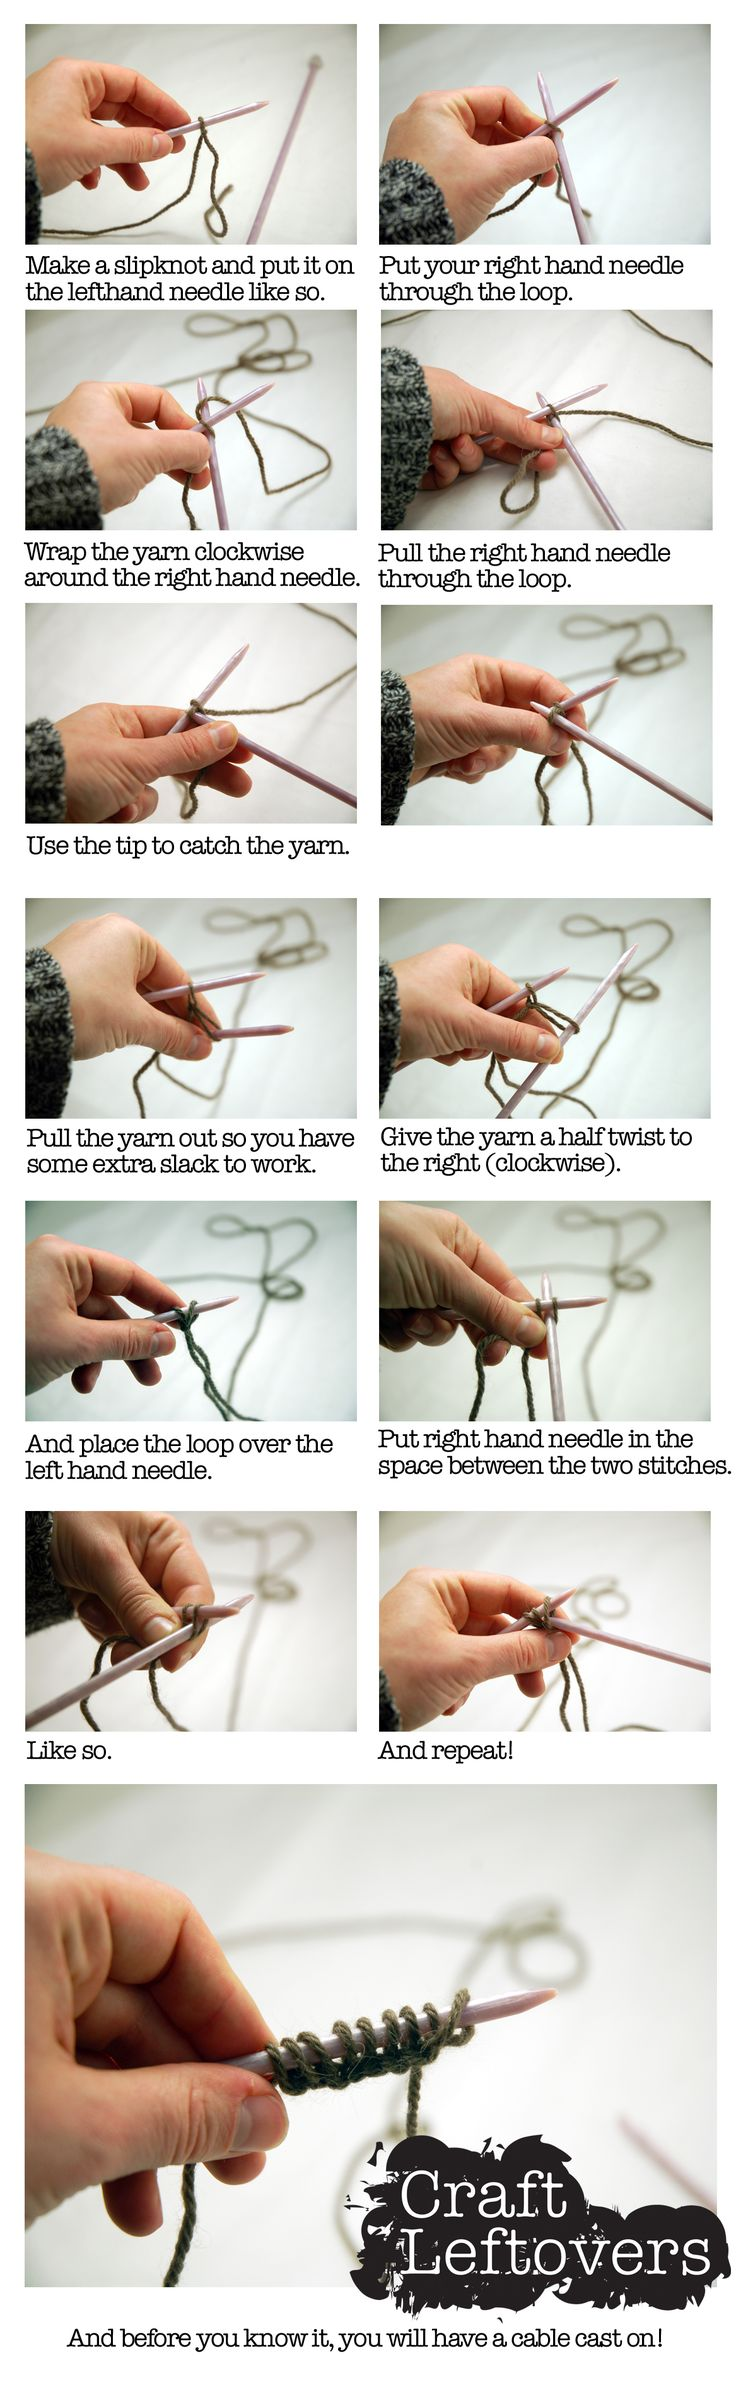 Knitting Long Tail Cast On How Much : Best images about craft leftovers on pinterest